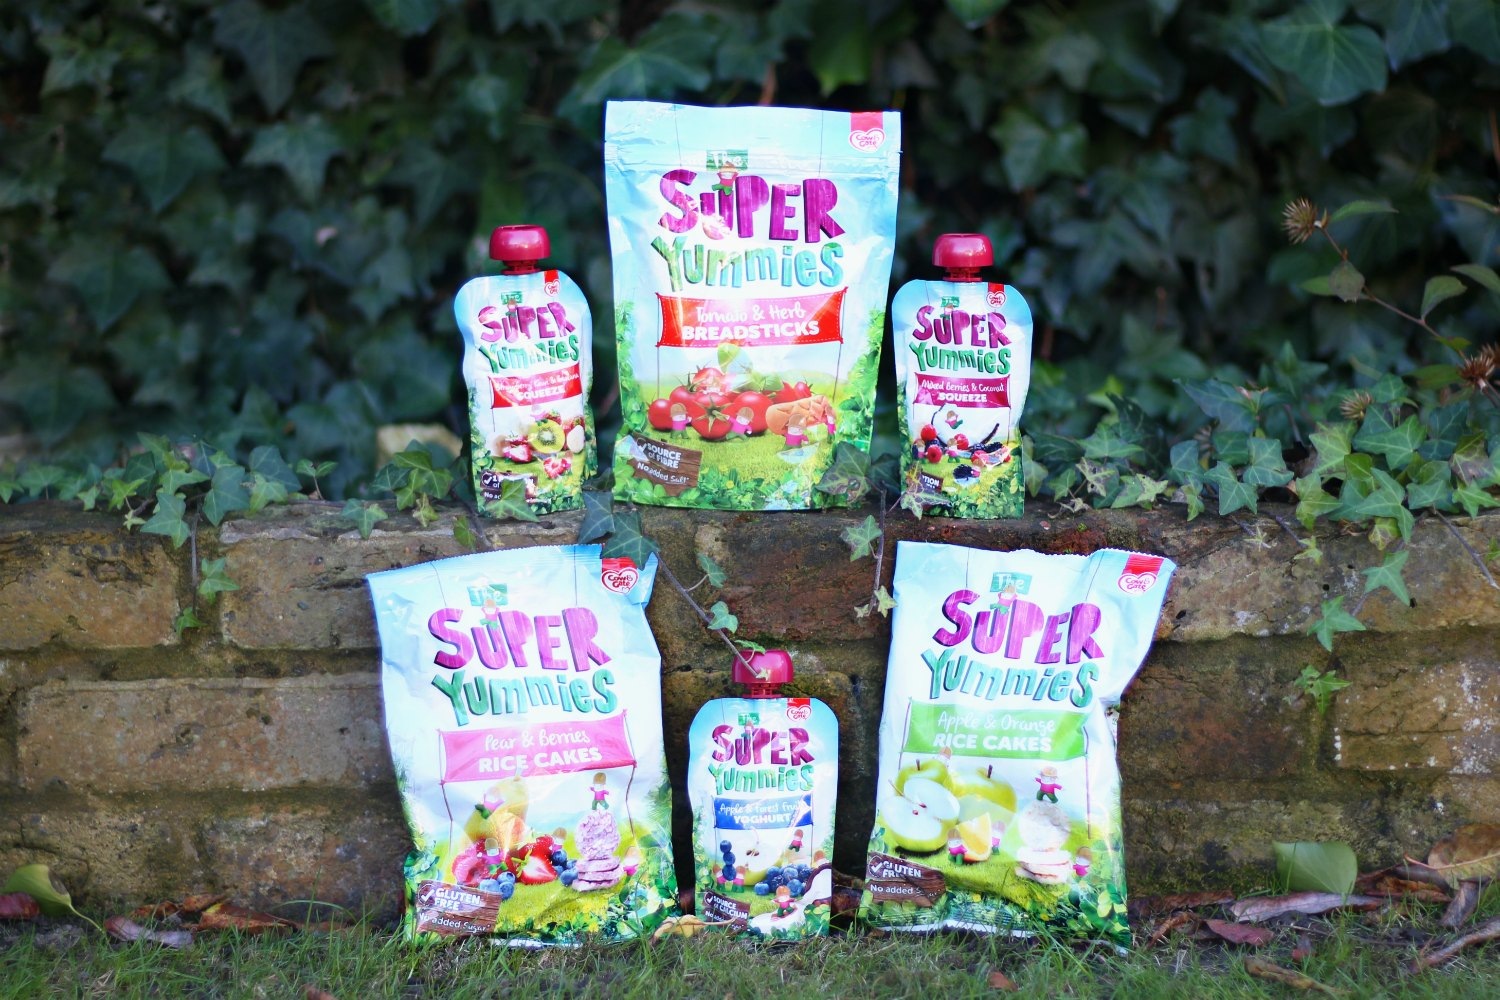 The Super Yummies range from Cow & Gate